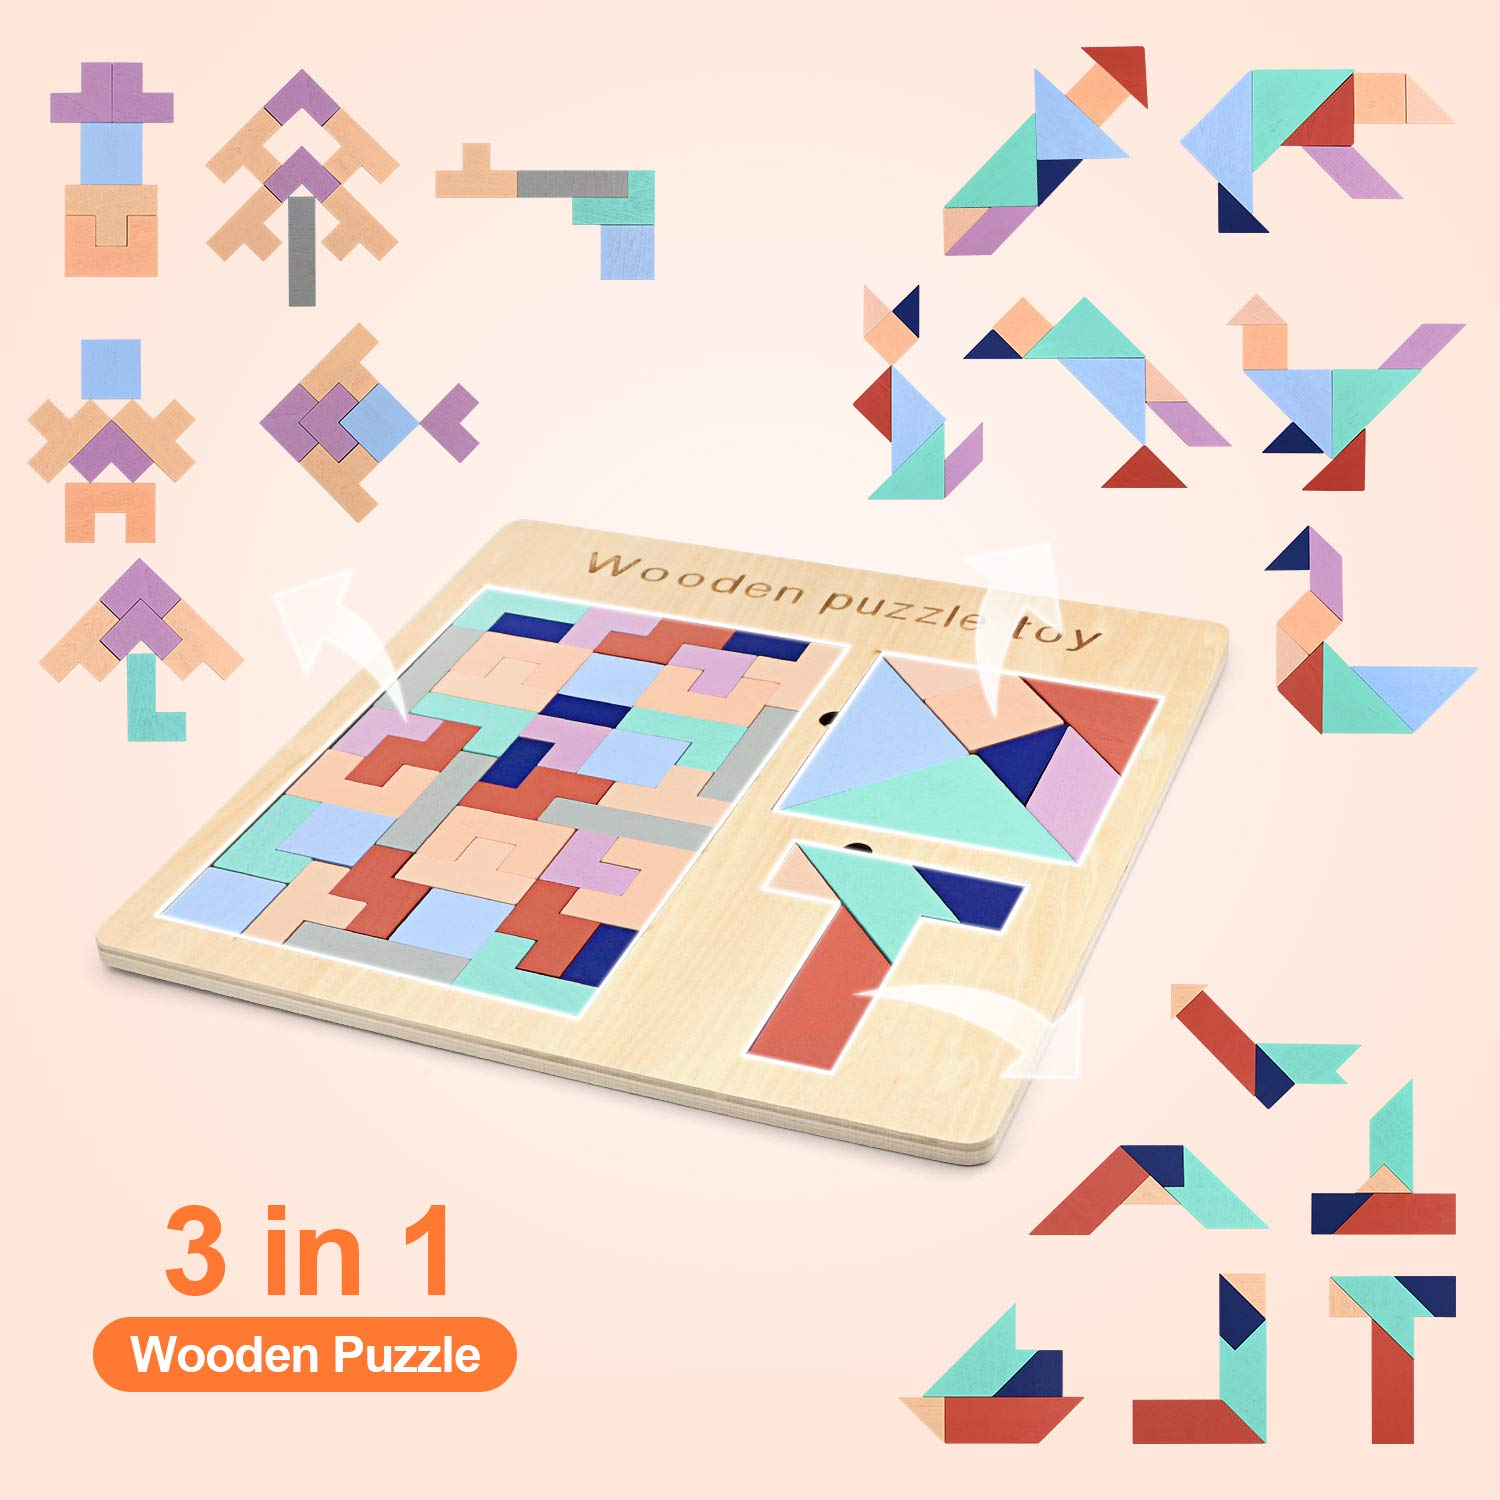 SENWOW 3 in 1 Wooden Tetris Puzzle Tangram Puzzle T Jigsaw Intelligence Puzzle Game Iq Brain Teasers Blocks Fun Children Educational Toys for Kids Adults